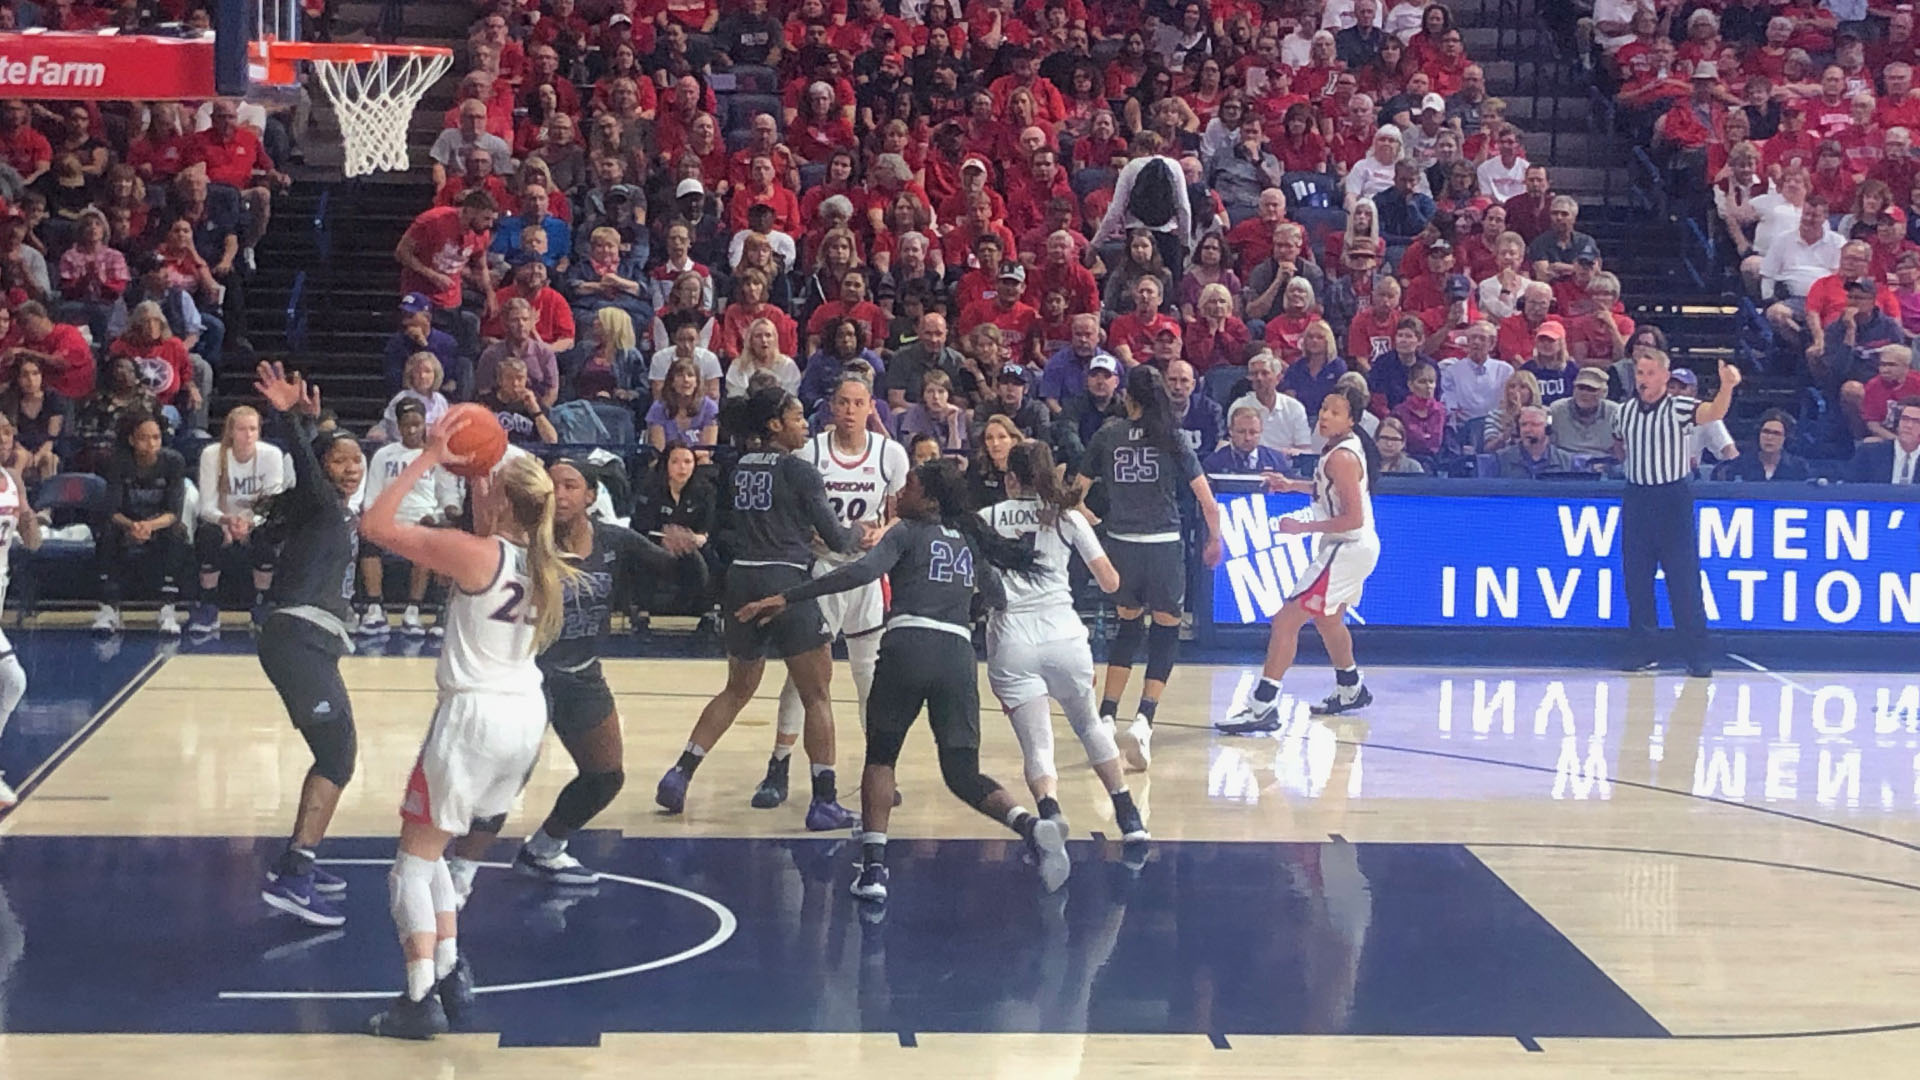 The University of Arizona women's basketball team in action against TCU in the 2019 National Invitation Tournament, April 3, 2019.